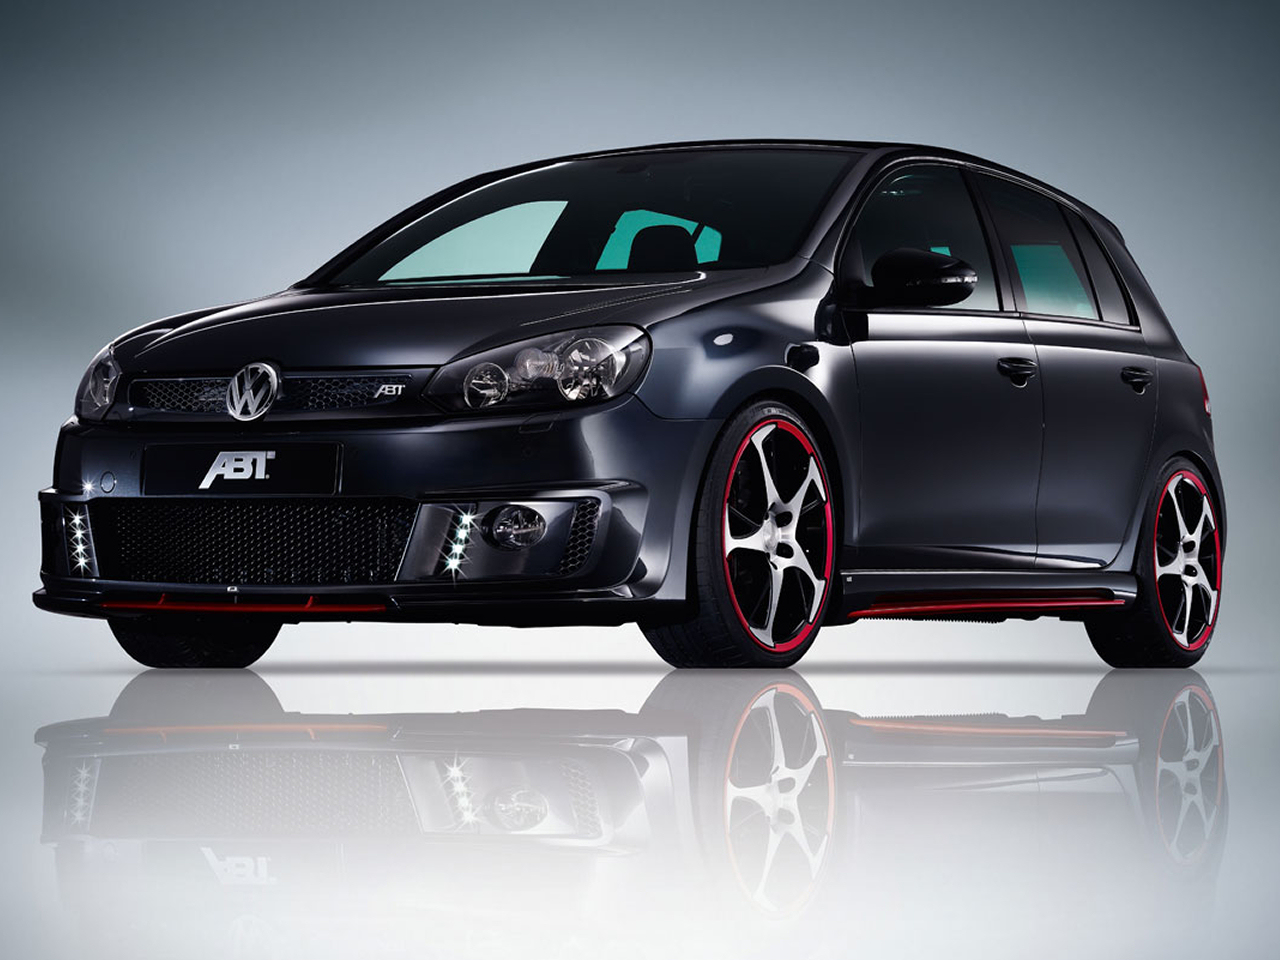 VW Golf Mark VI GTI by Abt Sportsline